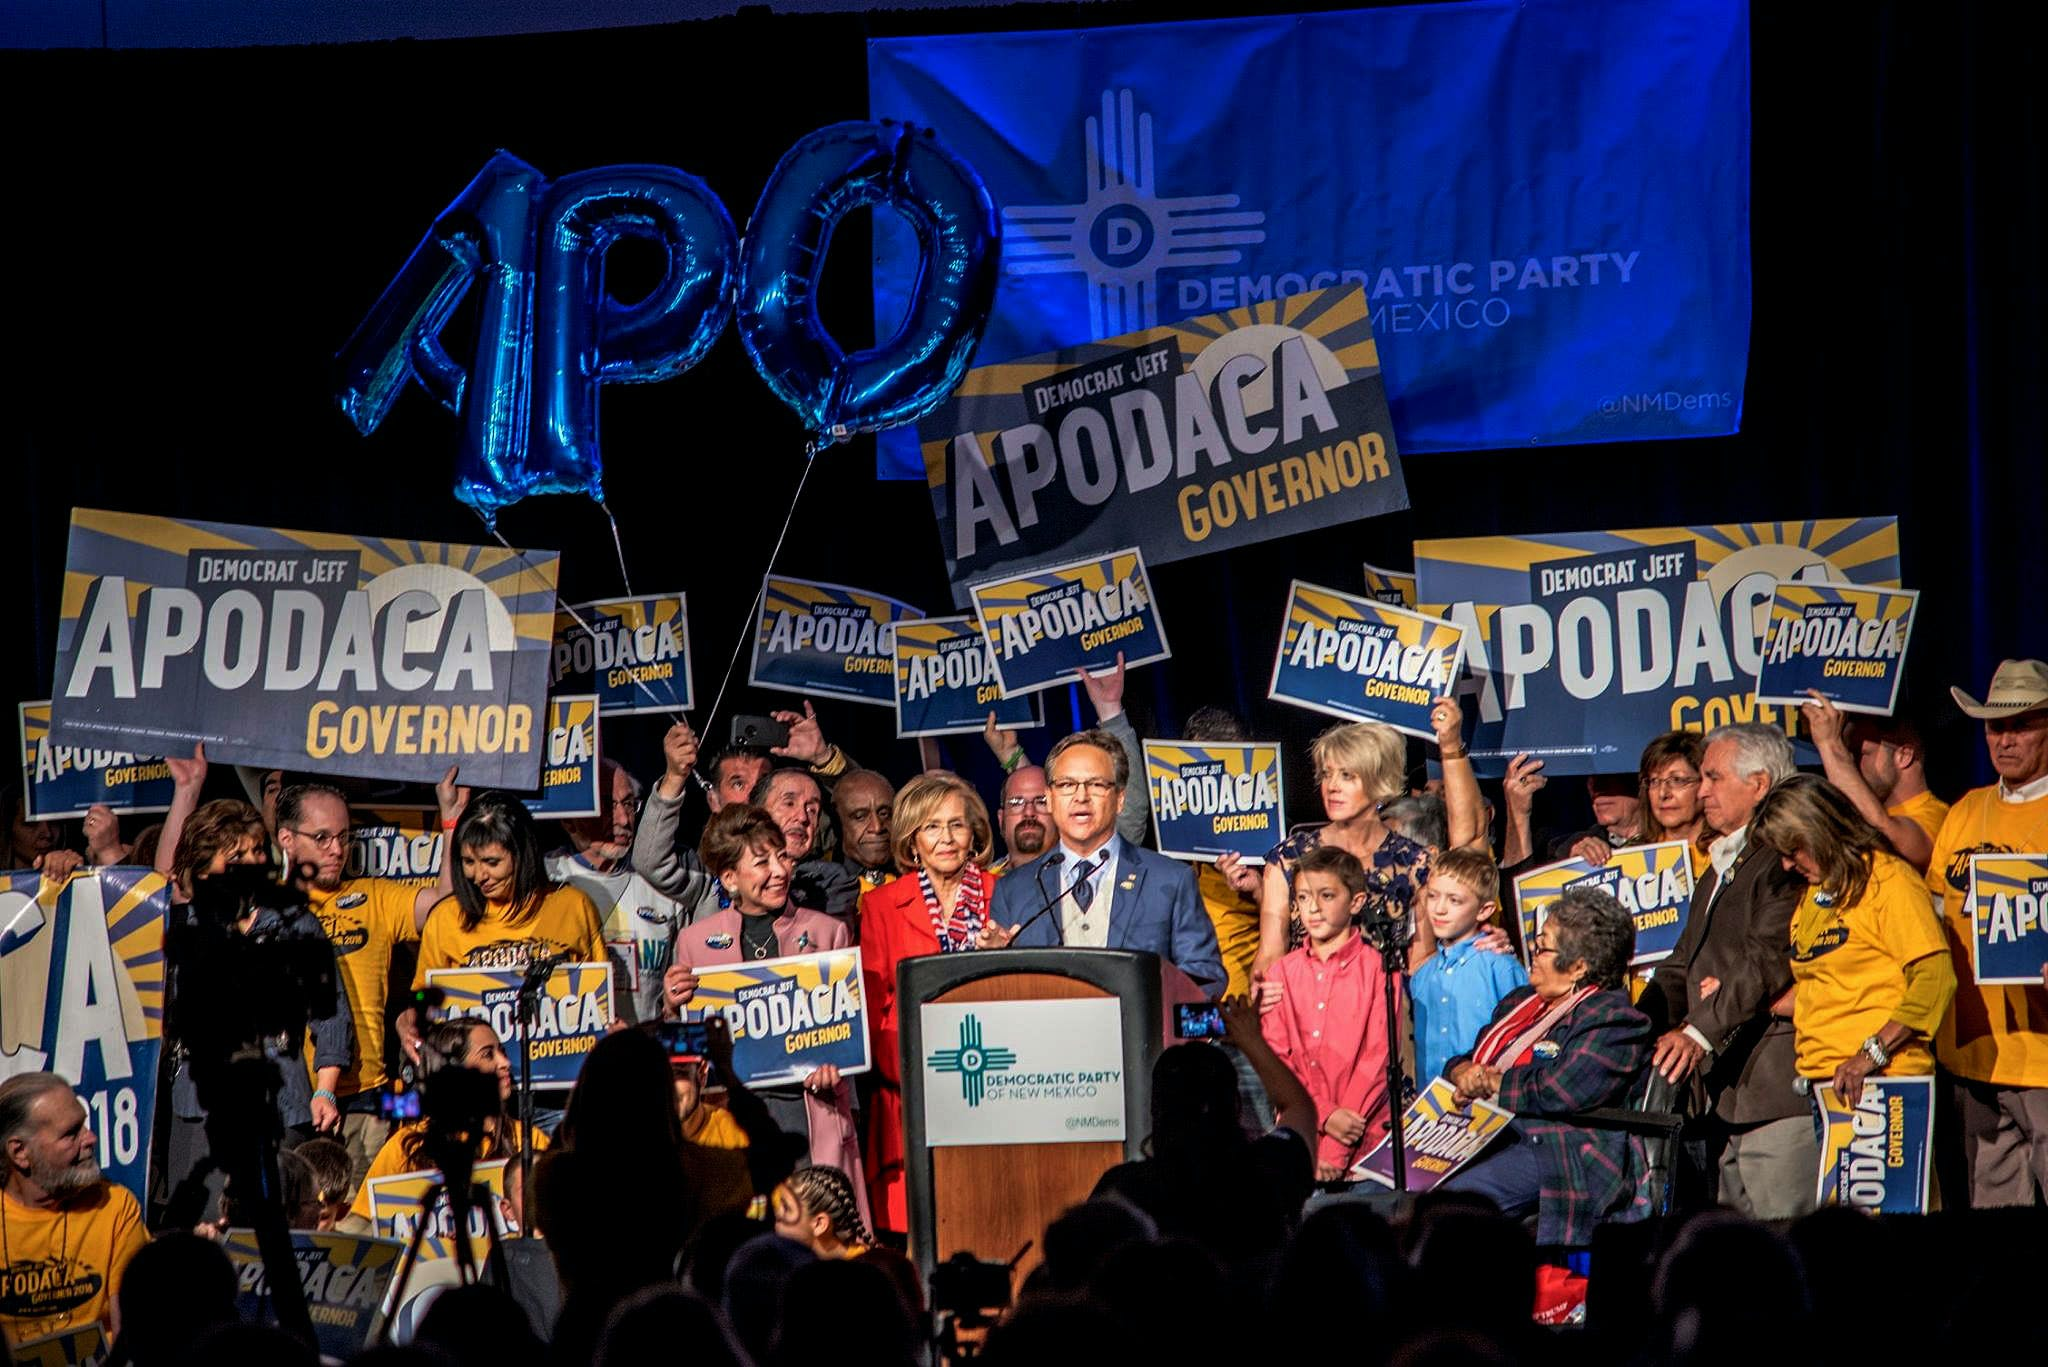 6Cannabis Got Jeff Apodaca Through Cancer. Now He%E2%80%99s Running For Governor Of New Mexico. California Considers Licensing Its Own Banks For The Cannabis Industry